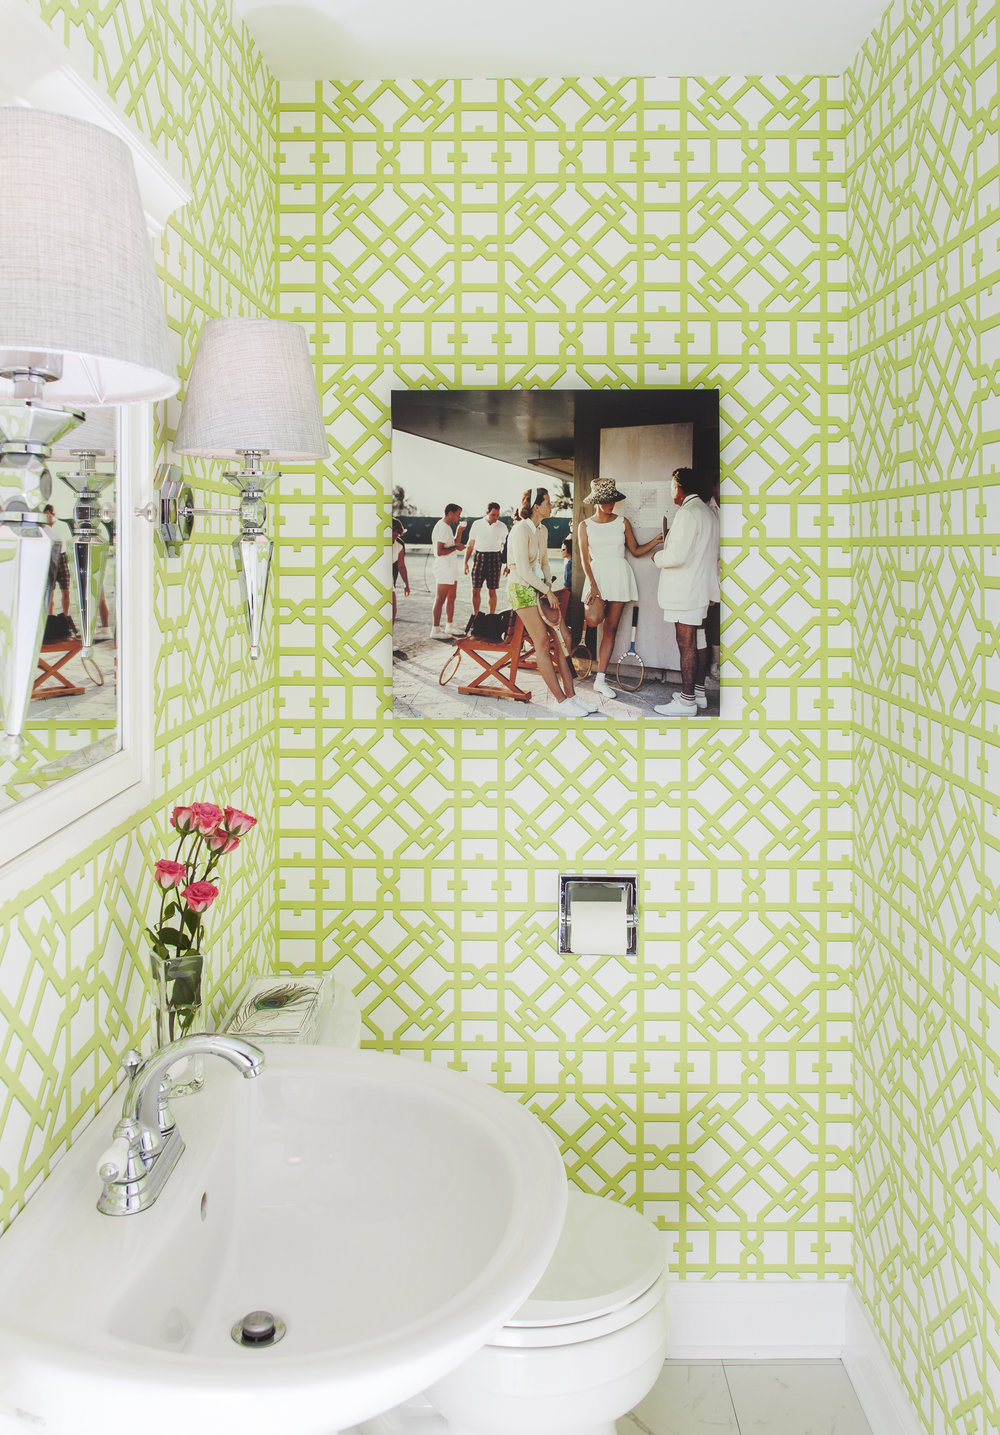 SMI_Sunnyside_powder room with art_web (1).JPG